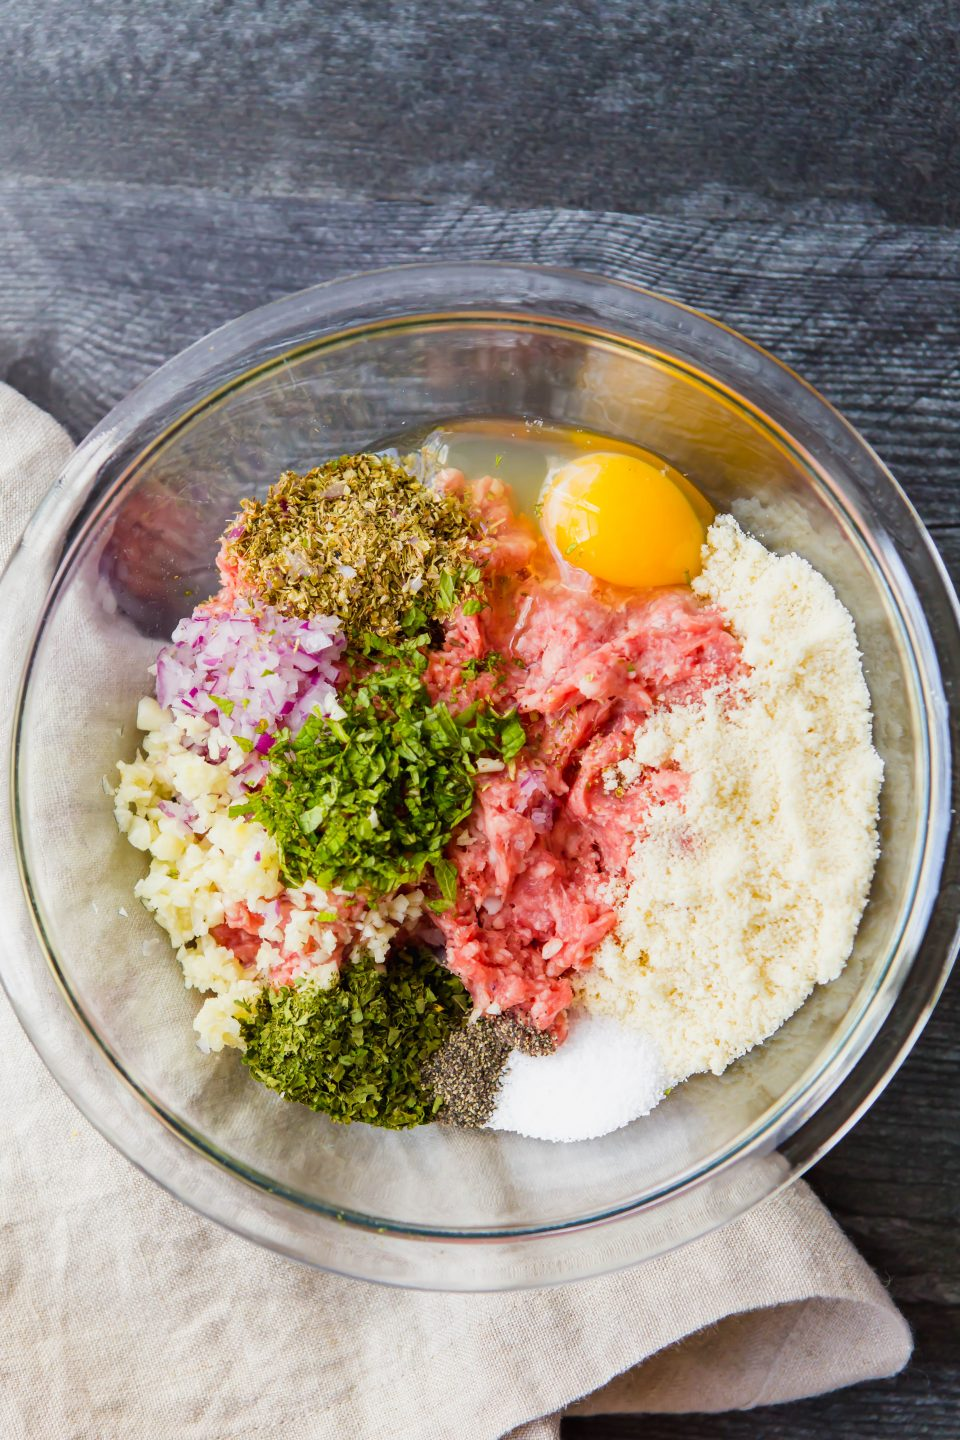 An overheard shot of a bowl with raw meatball ingredients including ground lamb, almond flour, egg, salt, pepper, red onion, oregano, garlic, and parsley.